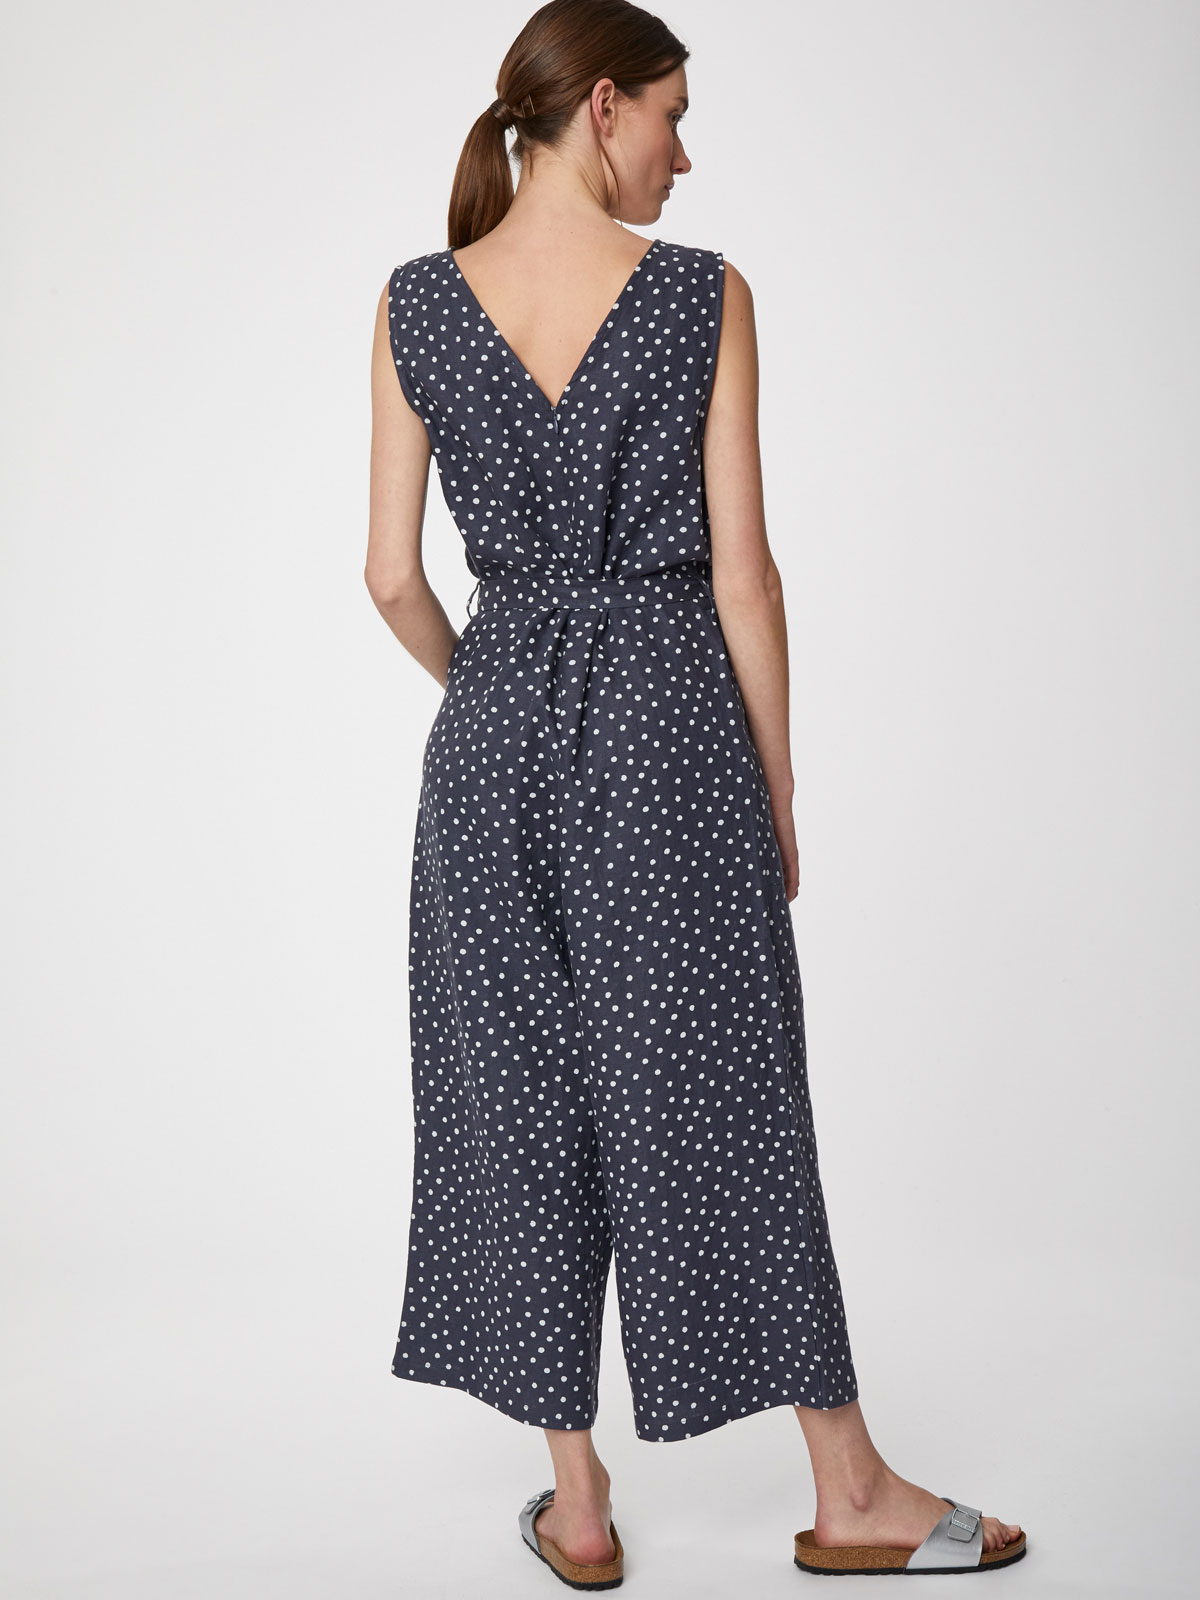 Thought Spot Marina Jumpsuit